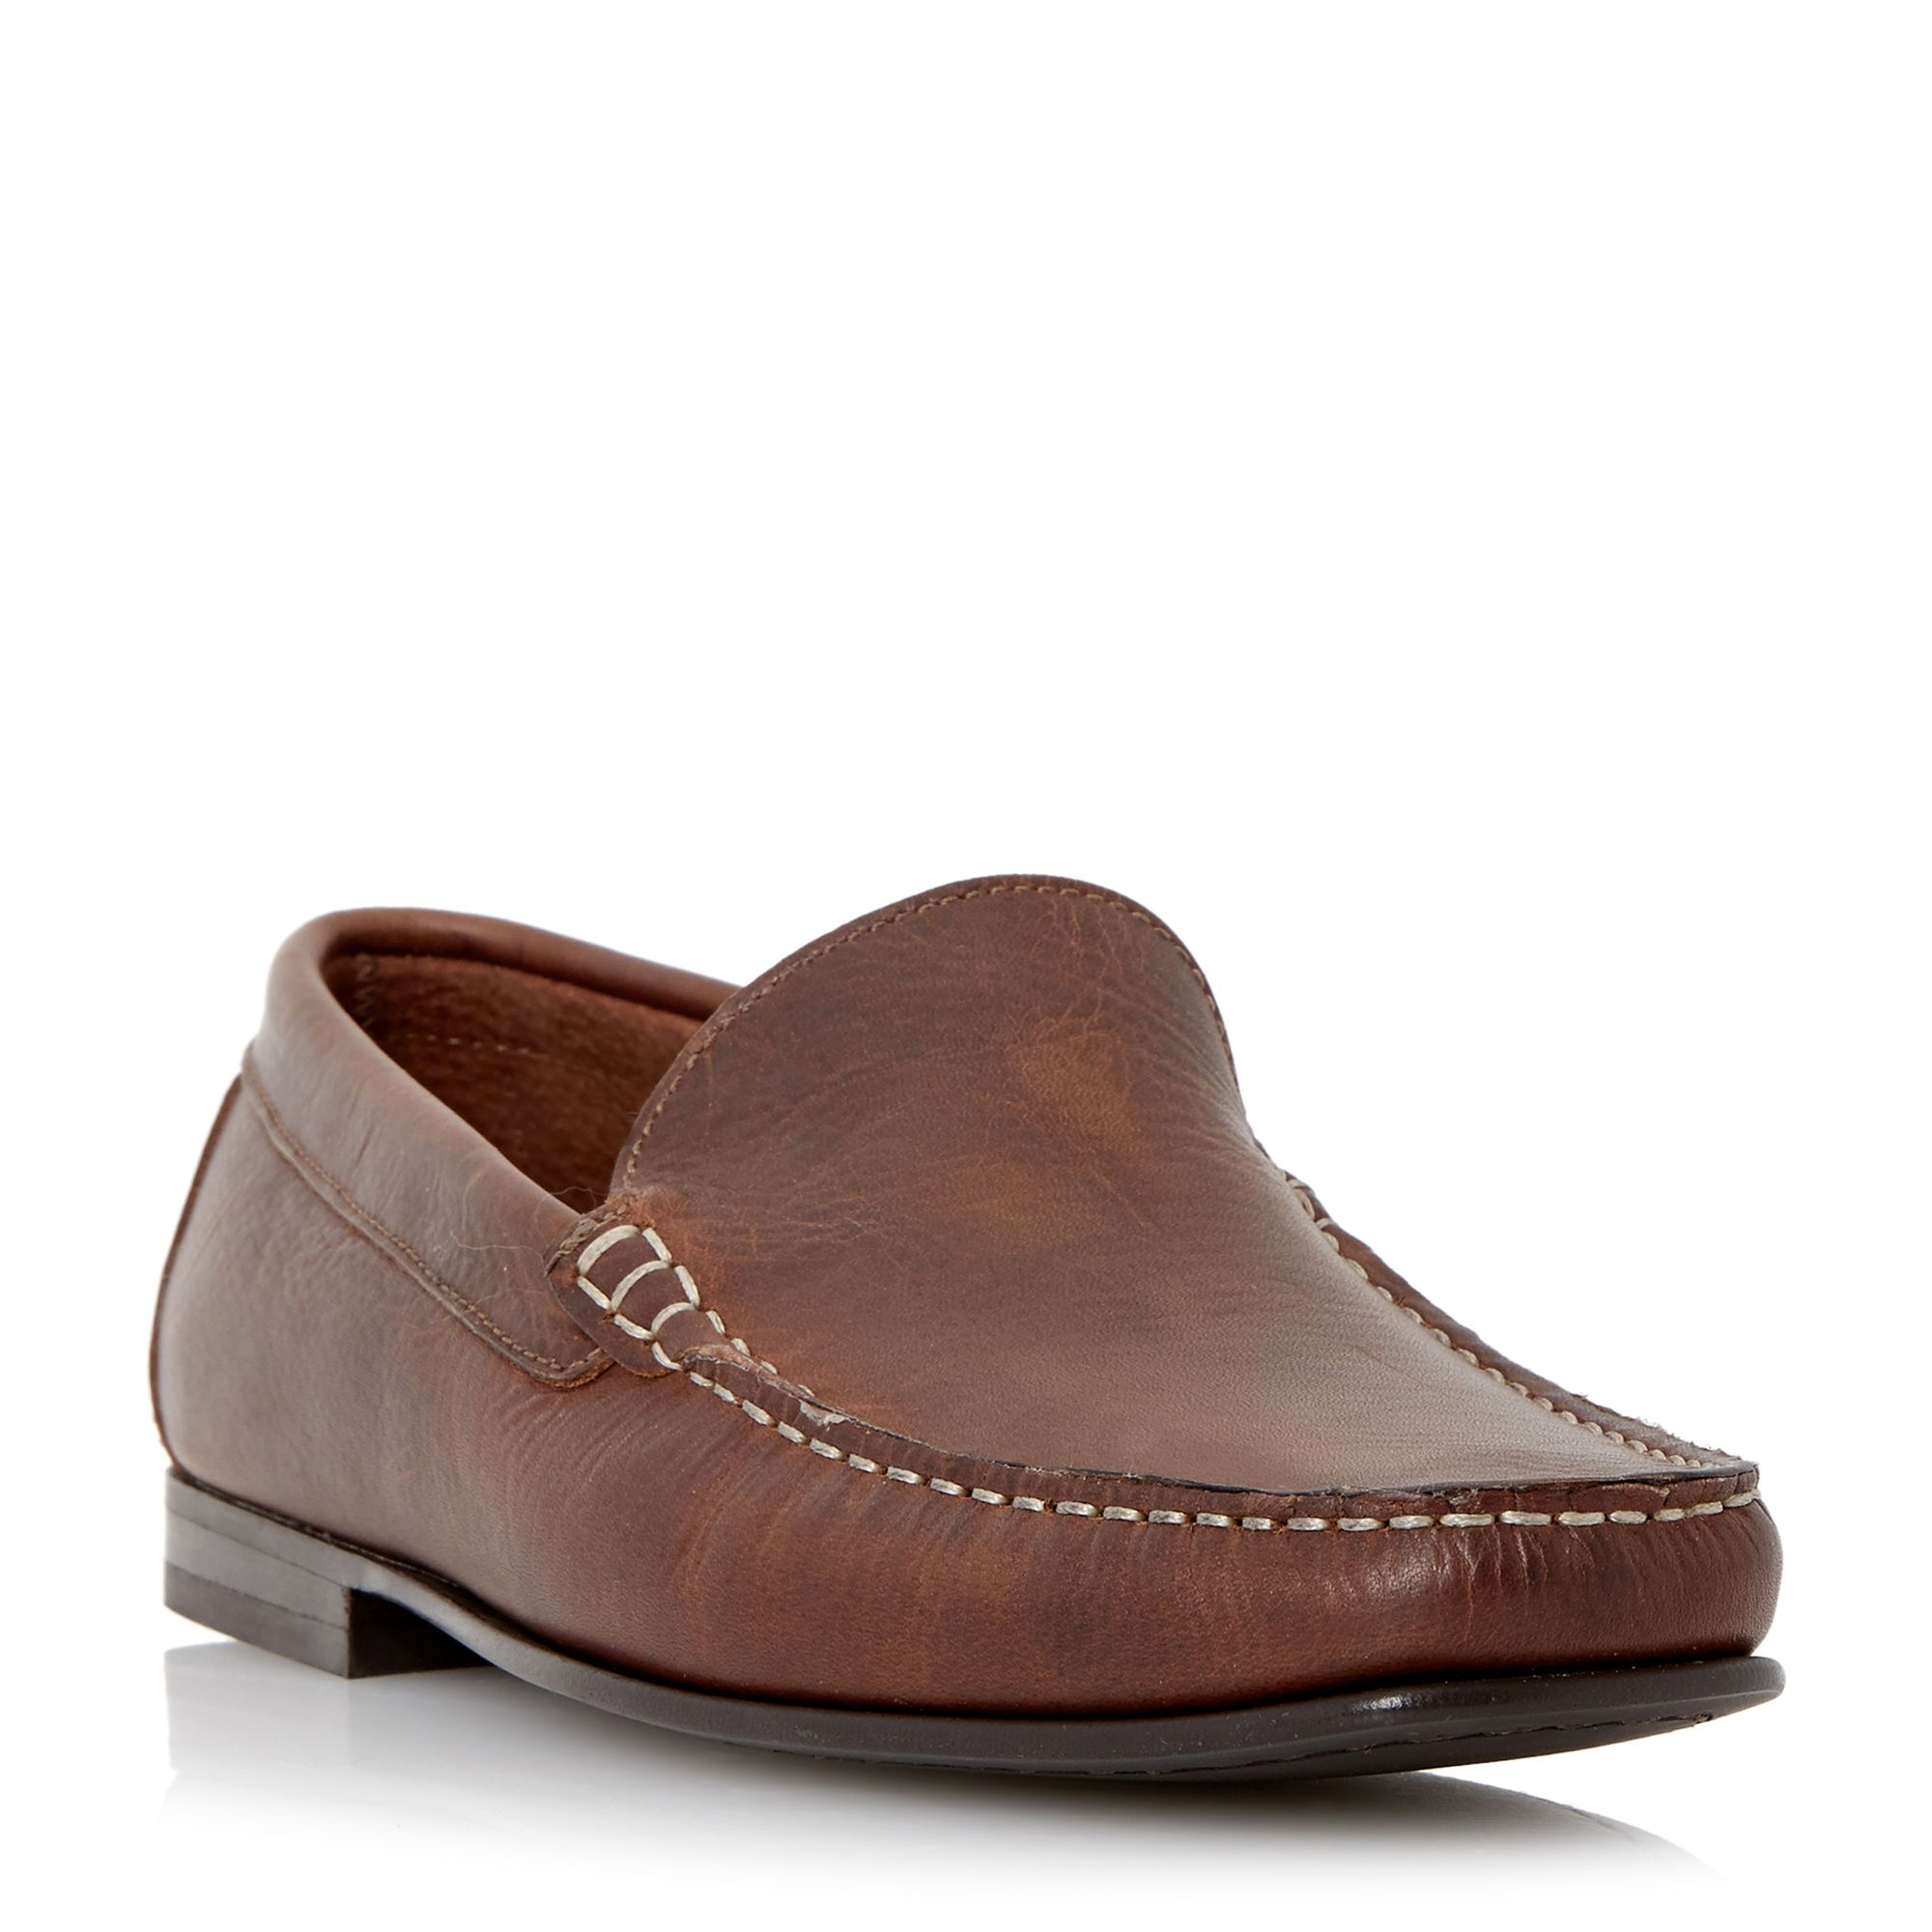 Mens Blk Moccasin House Shoes